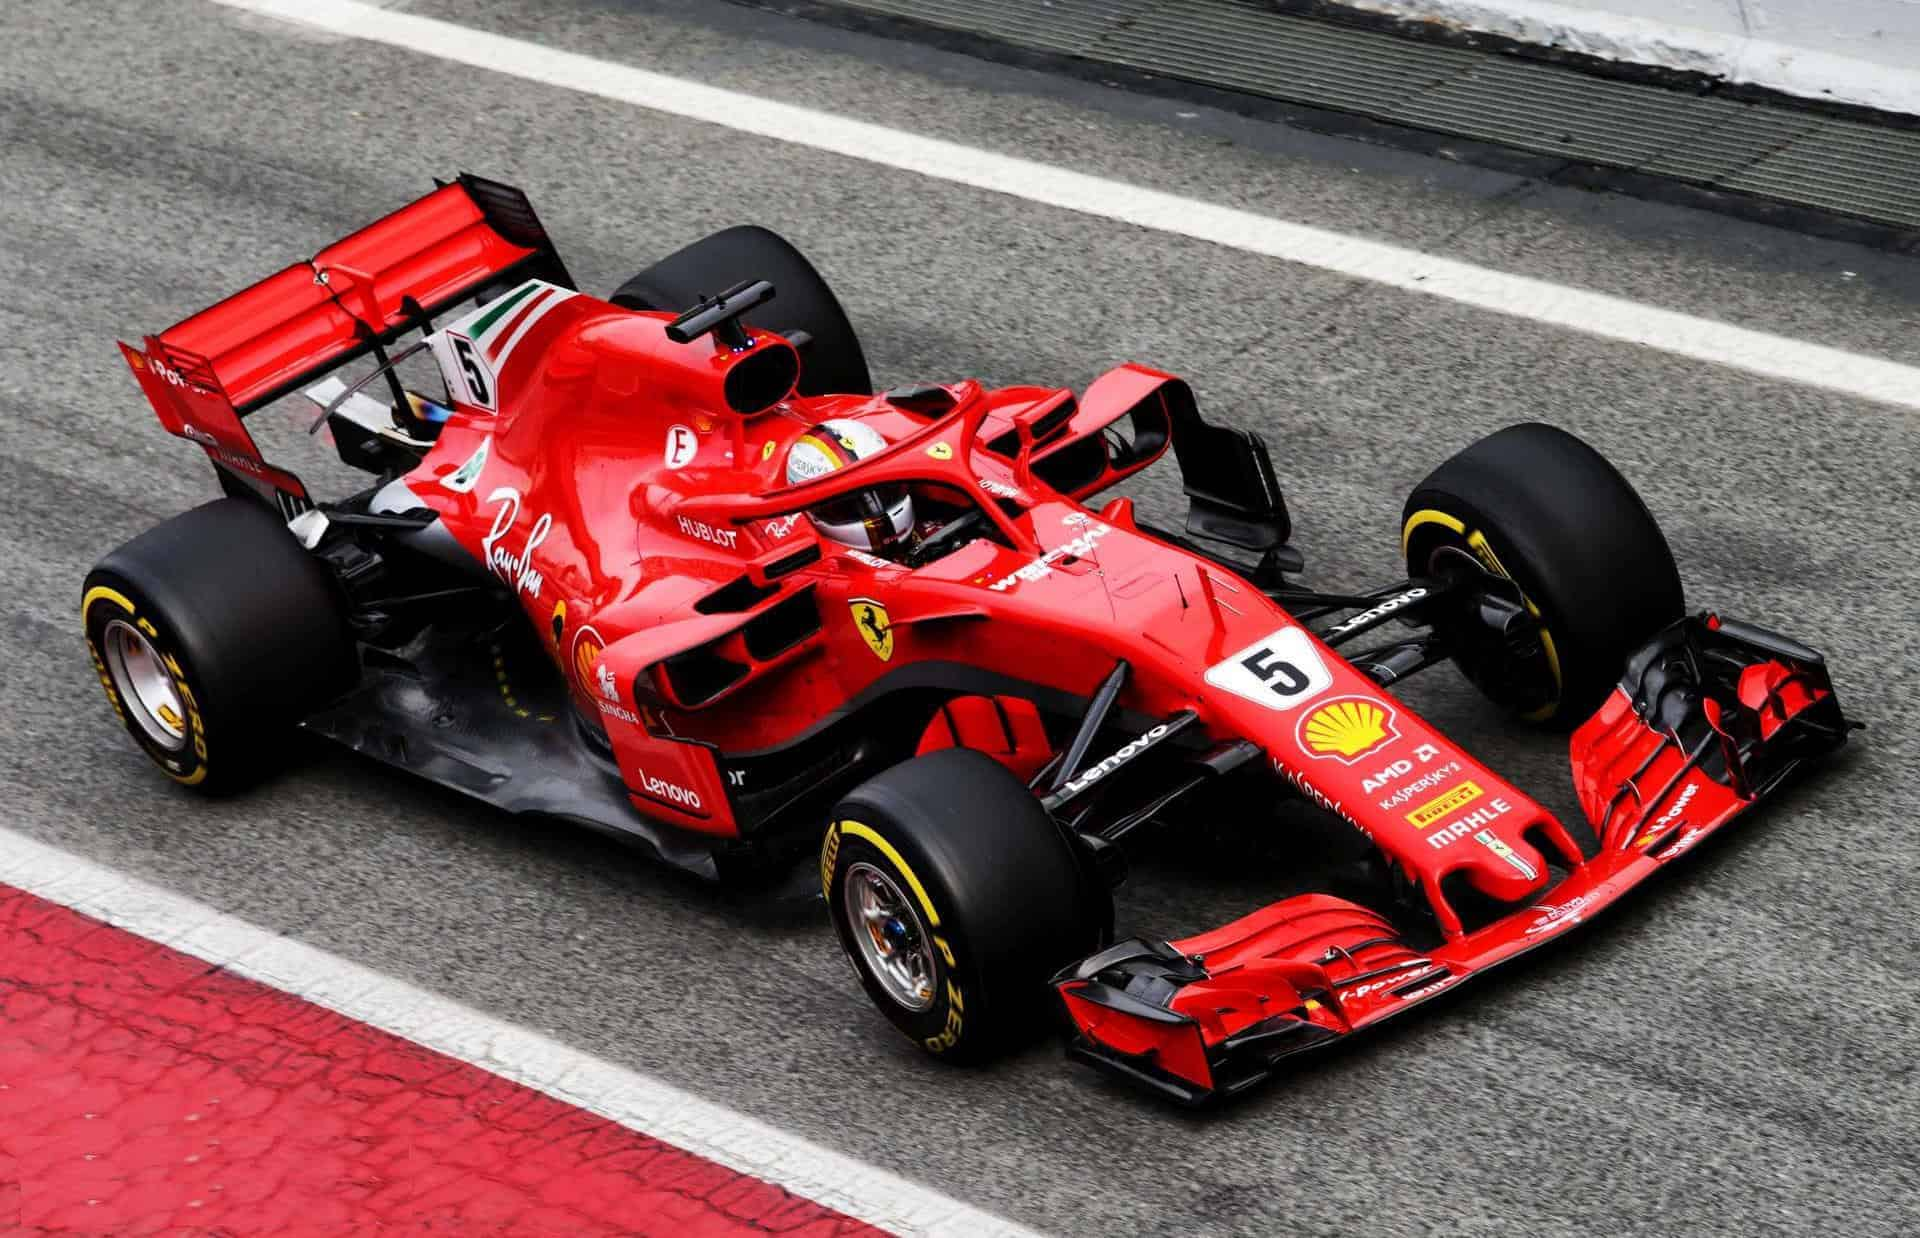 vettel fastest for ferrari in second day in barcelona 2018 f1 testing. Black Bedroom Furniture Sets. Home Design Ideas